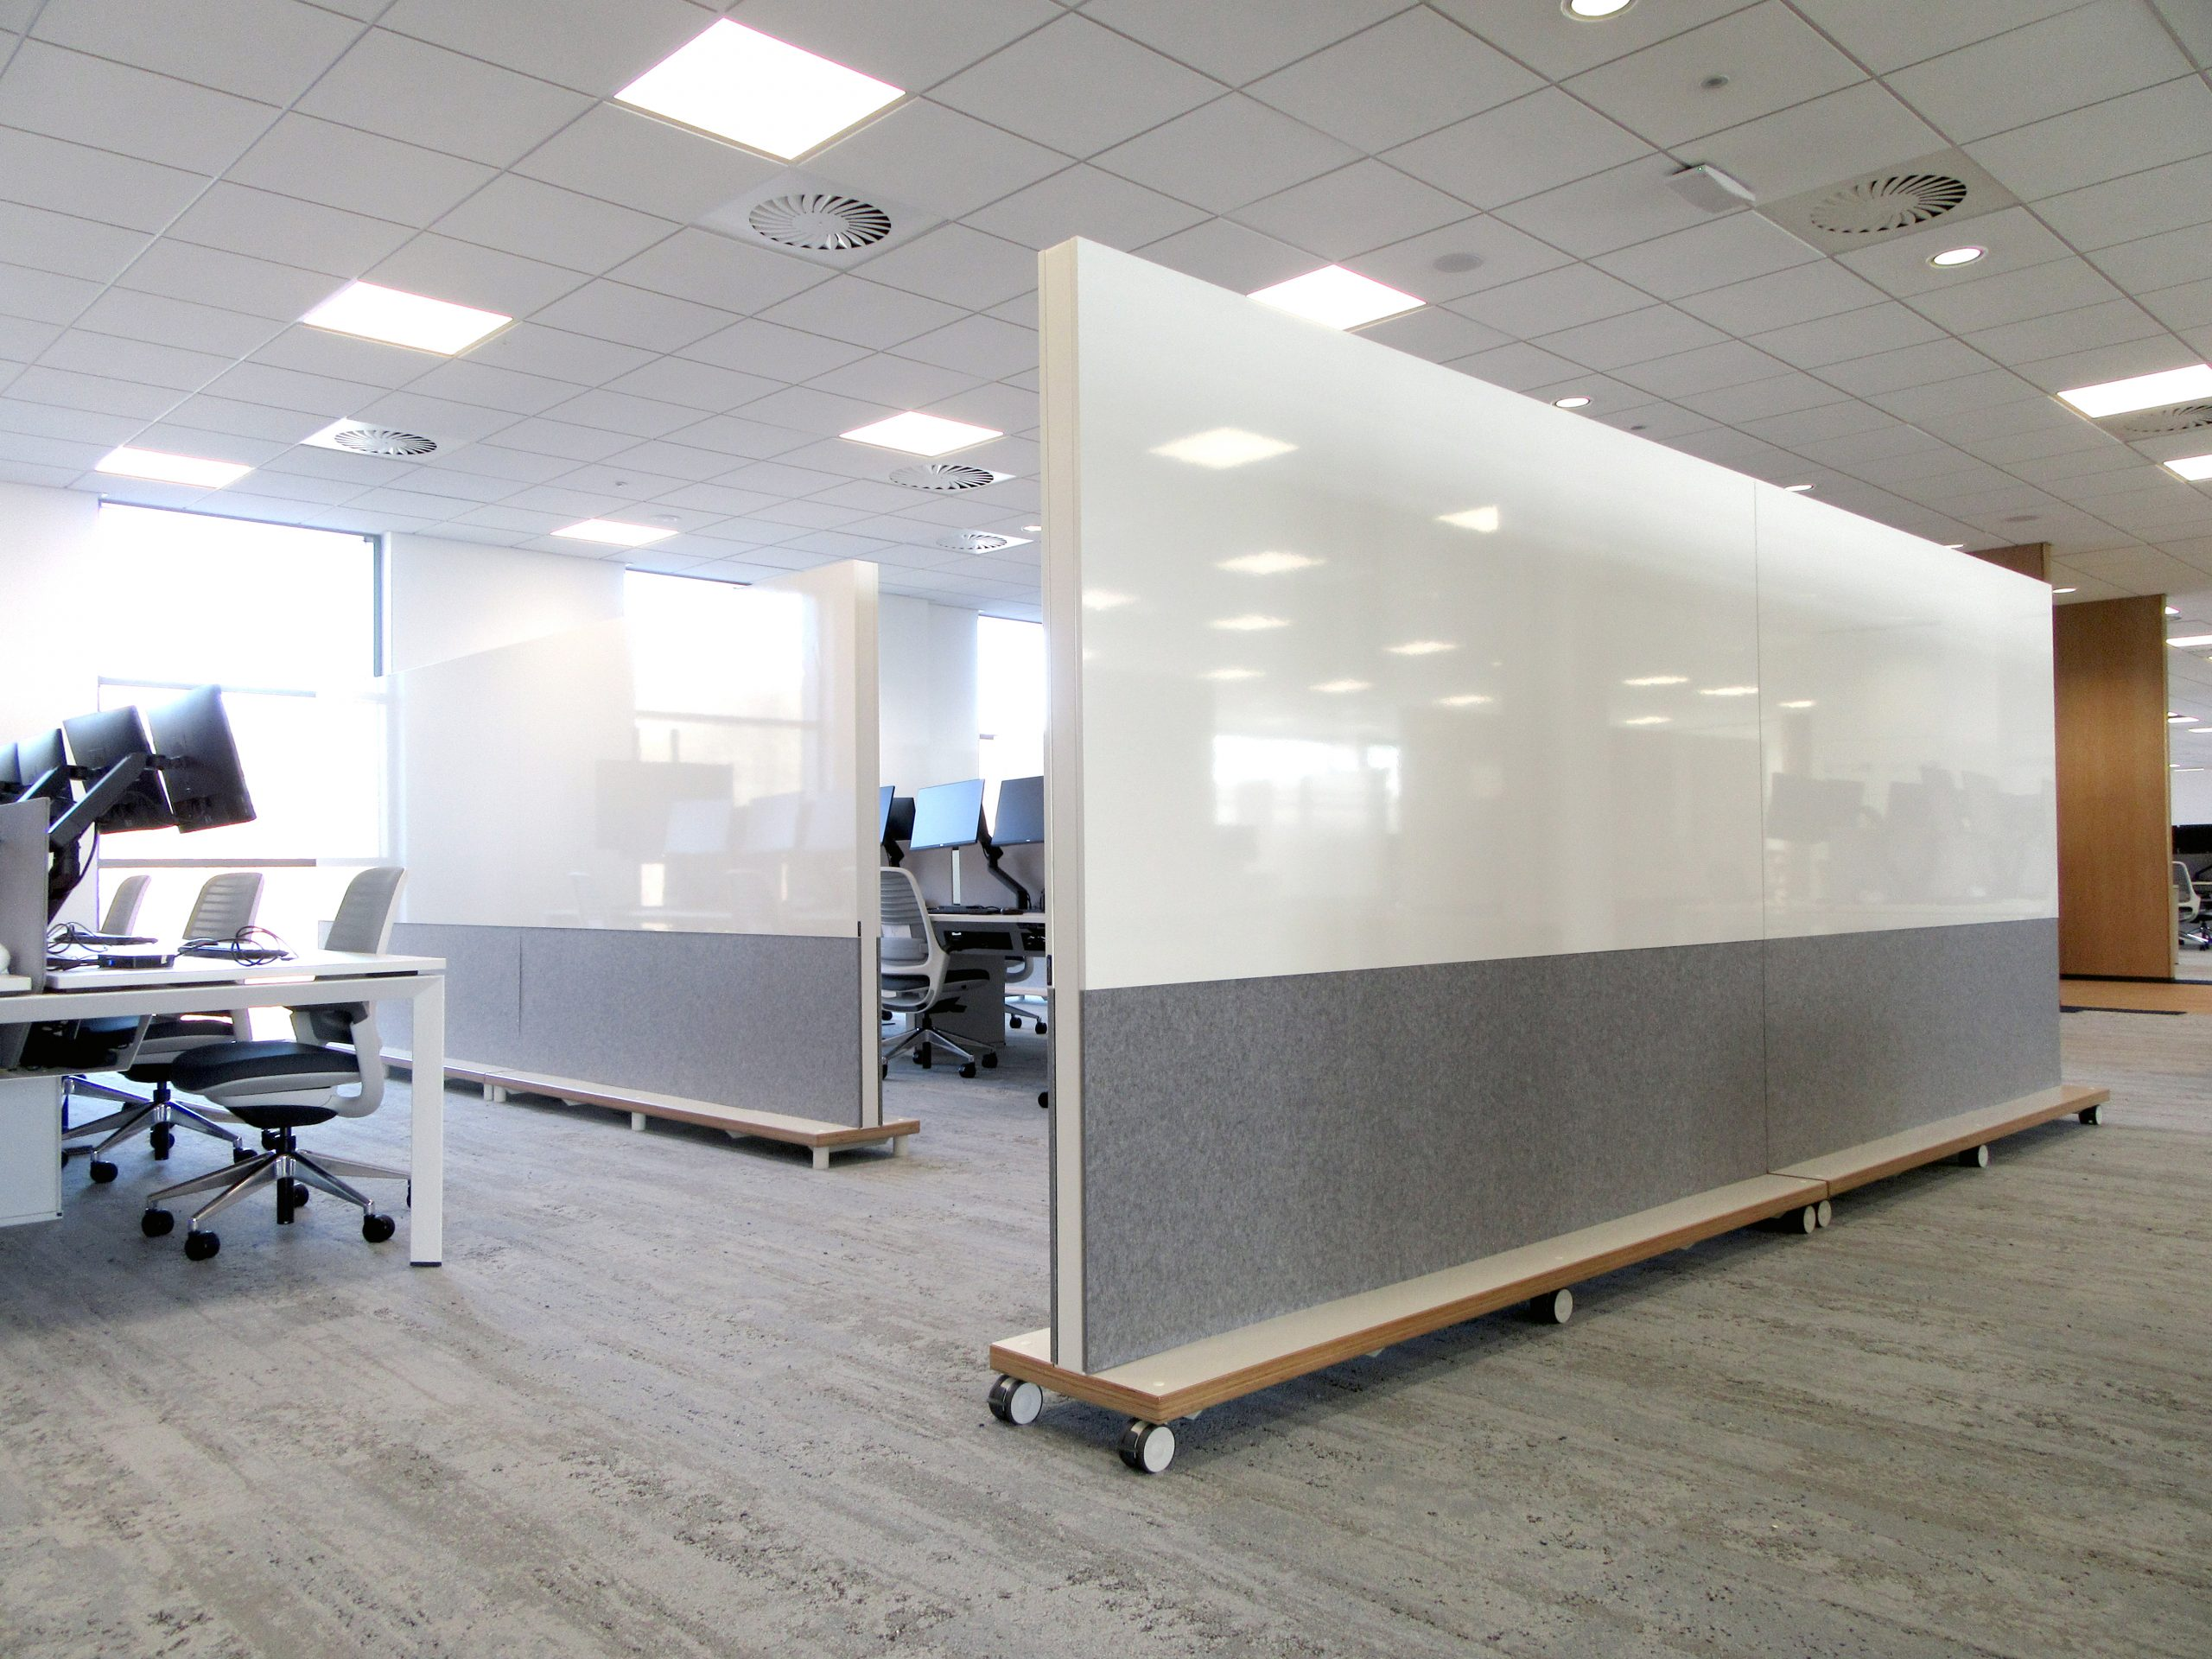 Acoustic office partition on wheels or legs